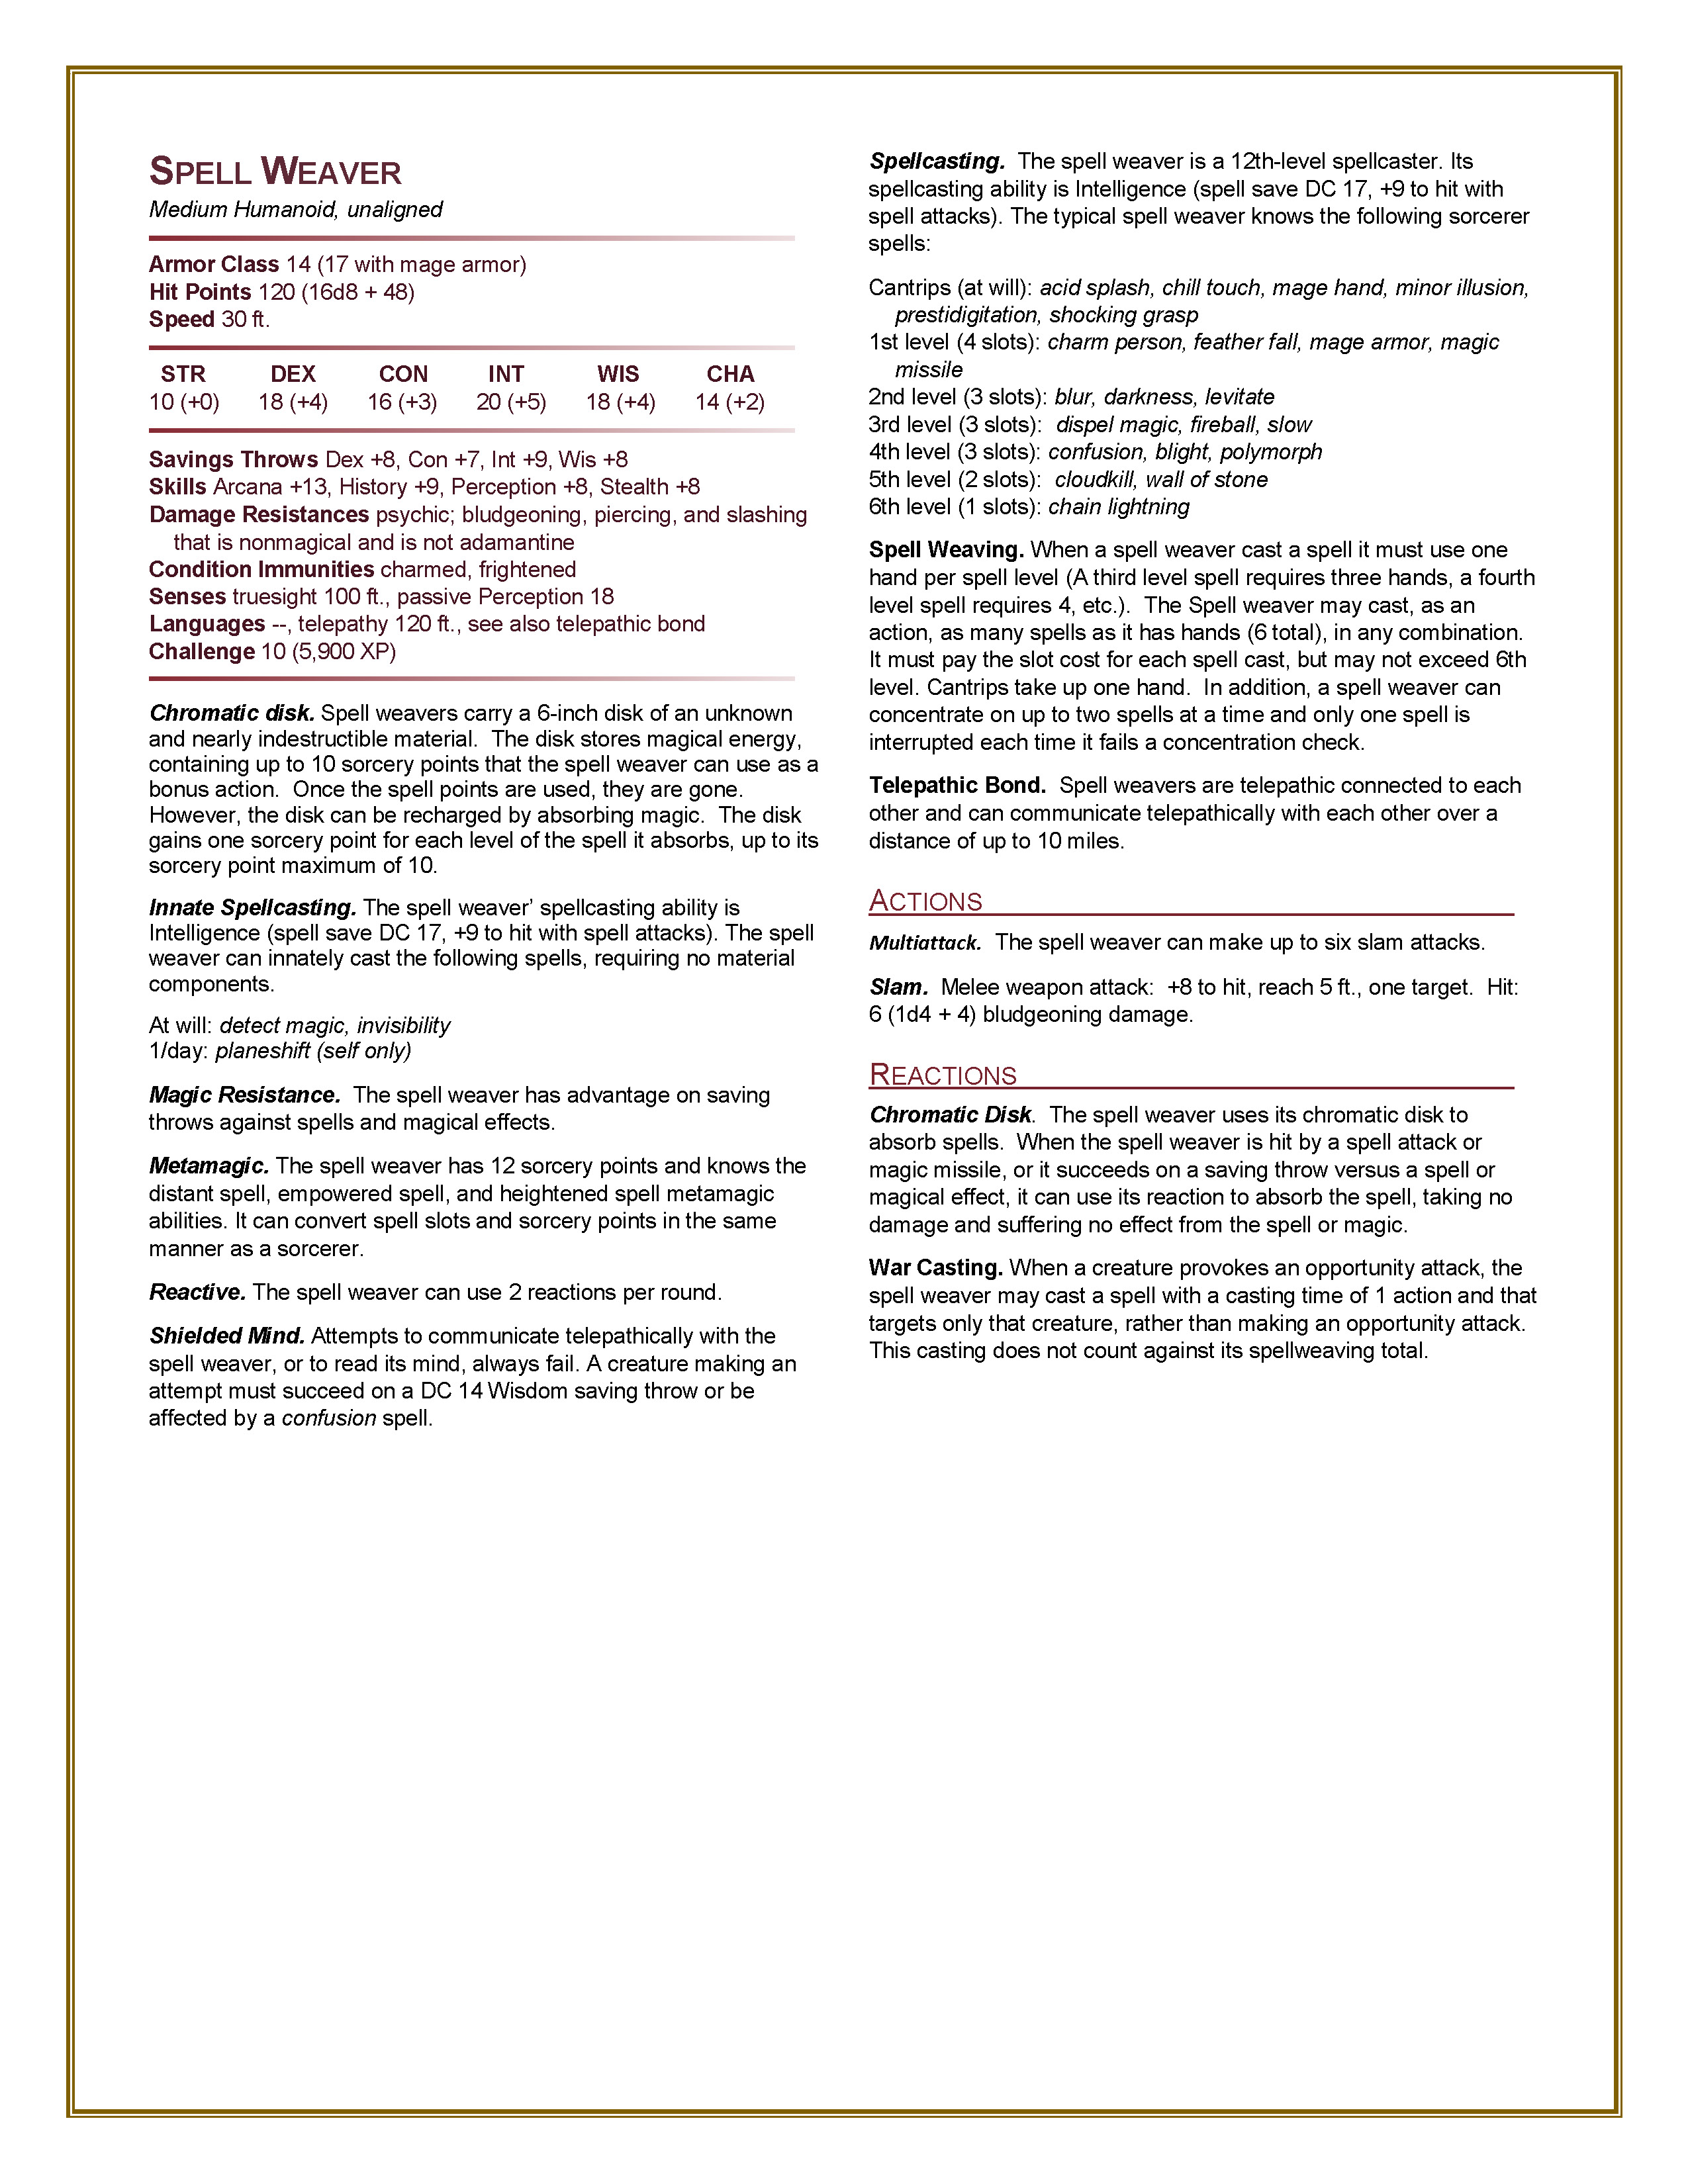 5e Hardcore: Monster Manual | Morrus' Unofficial Tabletop